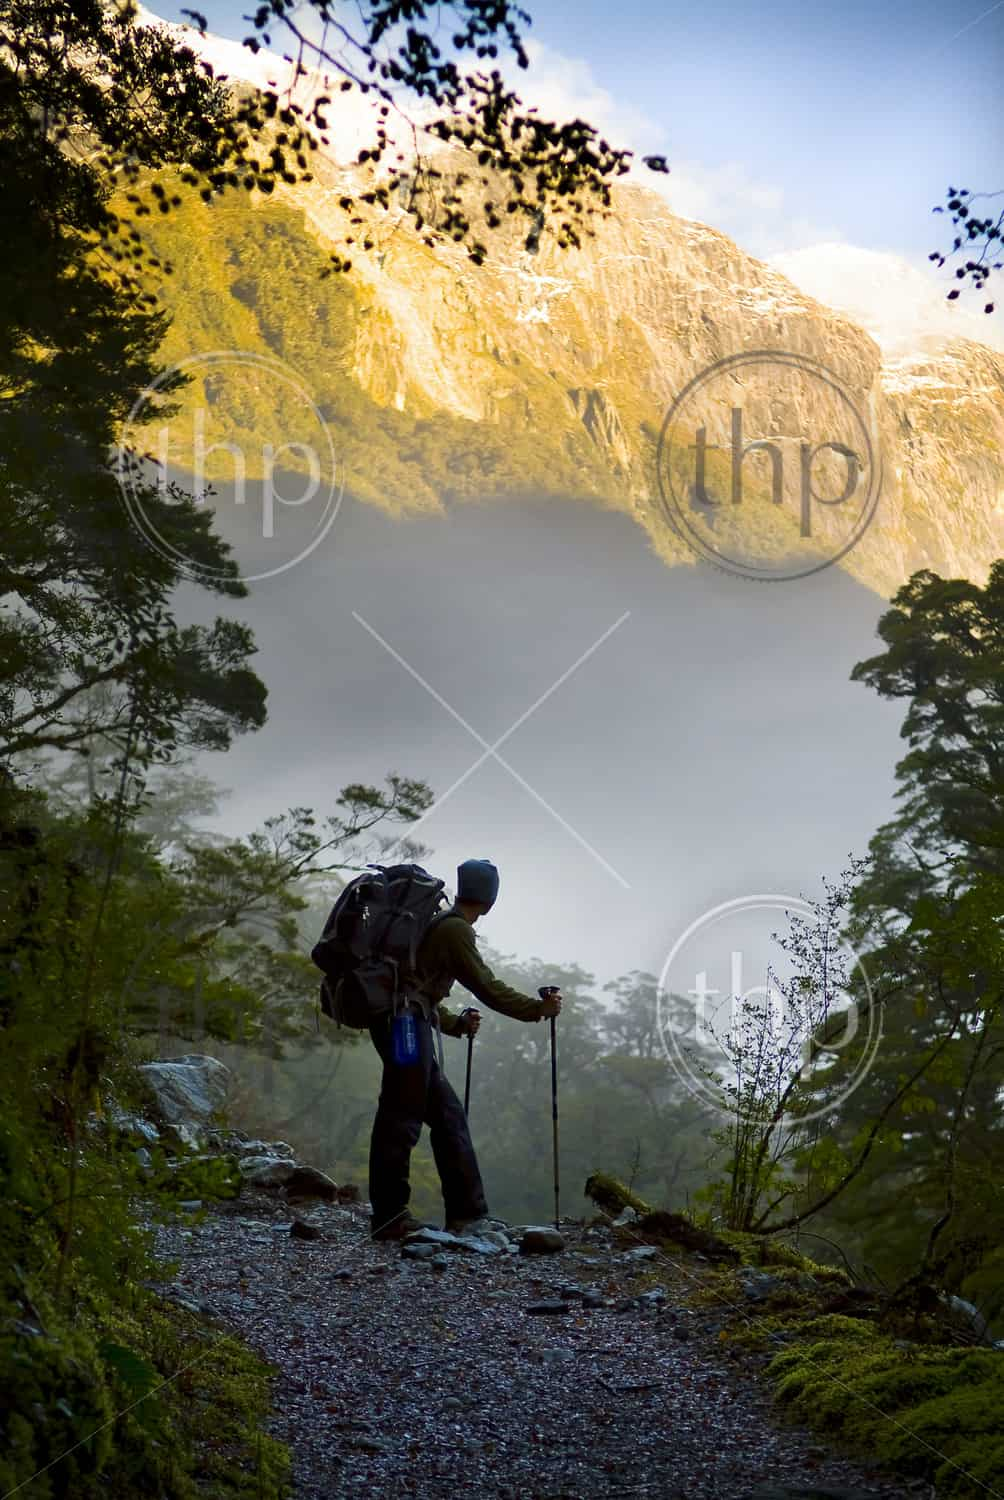 A hiker, hiking in New Zealand, pauses for a rest at a clearing with a view of the ascending mountains ahead